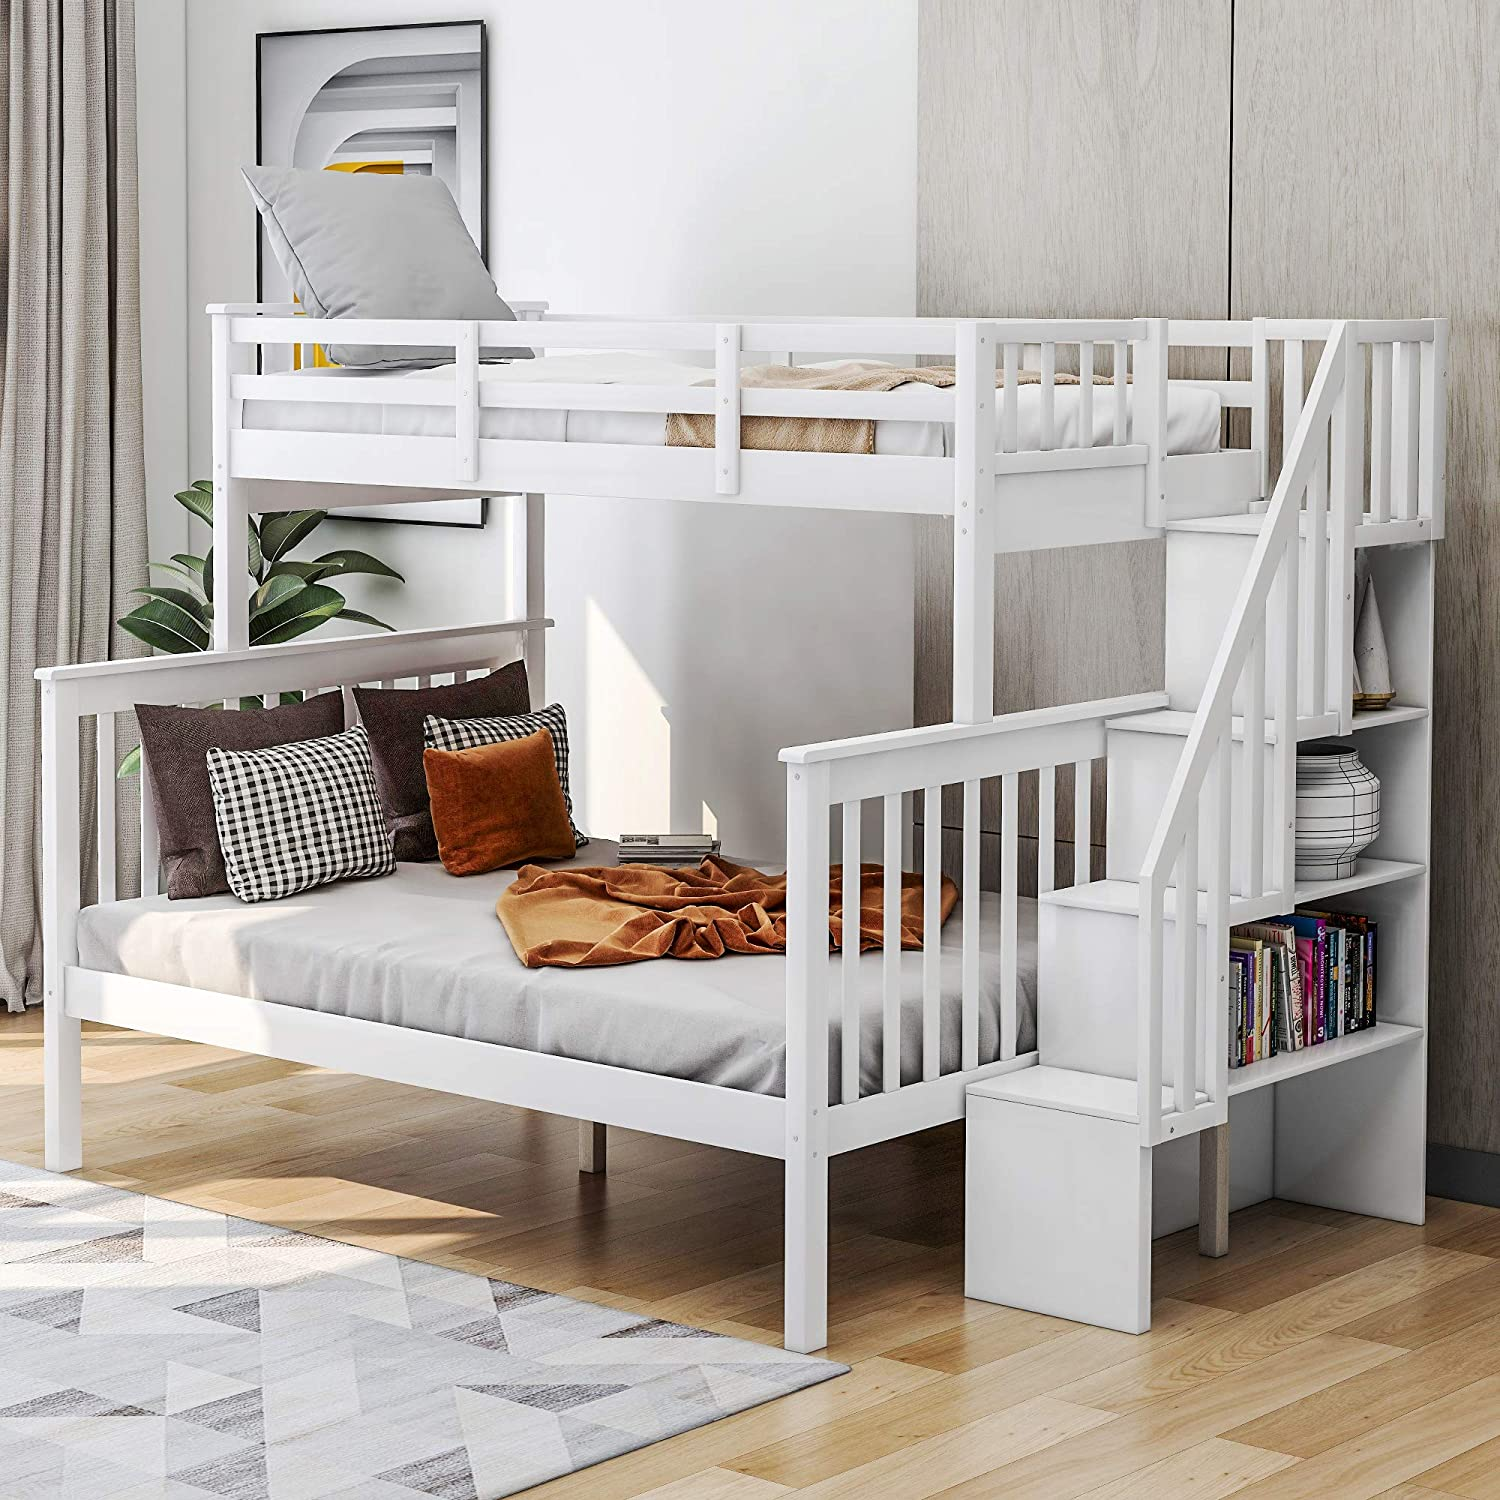 Amazon Com Merax Twin Over Full Bunk Bed Solid Wood Bunk Bed Frame With Storage Stairway Guard Rail For Bedroom Dorm Twin Over Full Bunk White Kitchen Dining